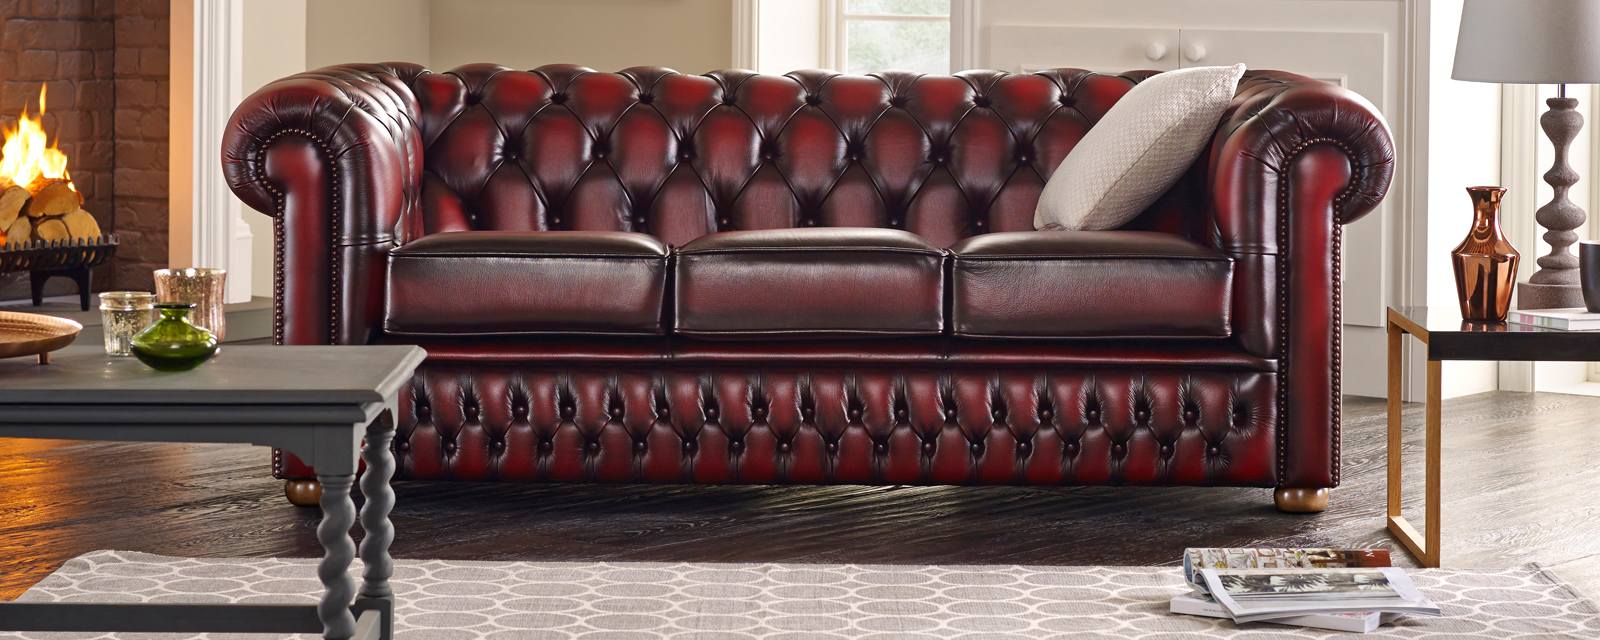 How To Clean You Vintage Rugs + Leather Sofas